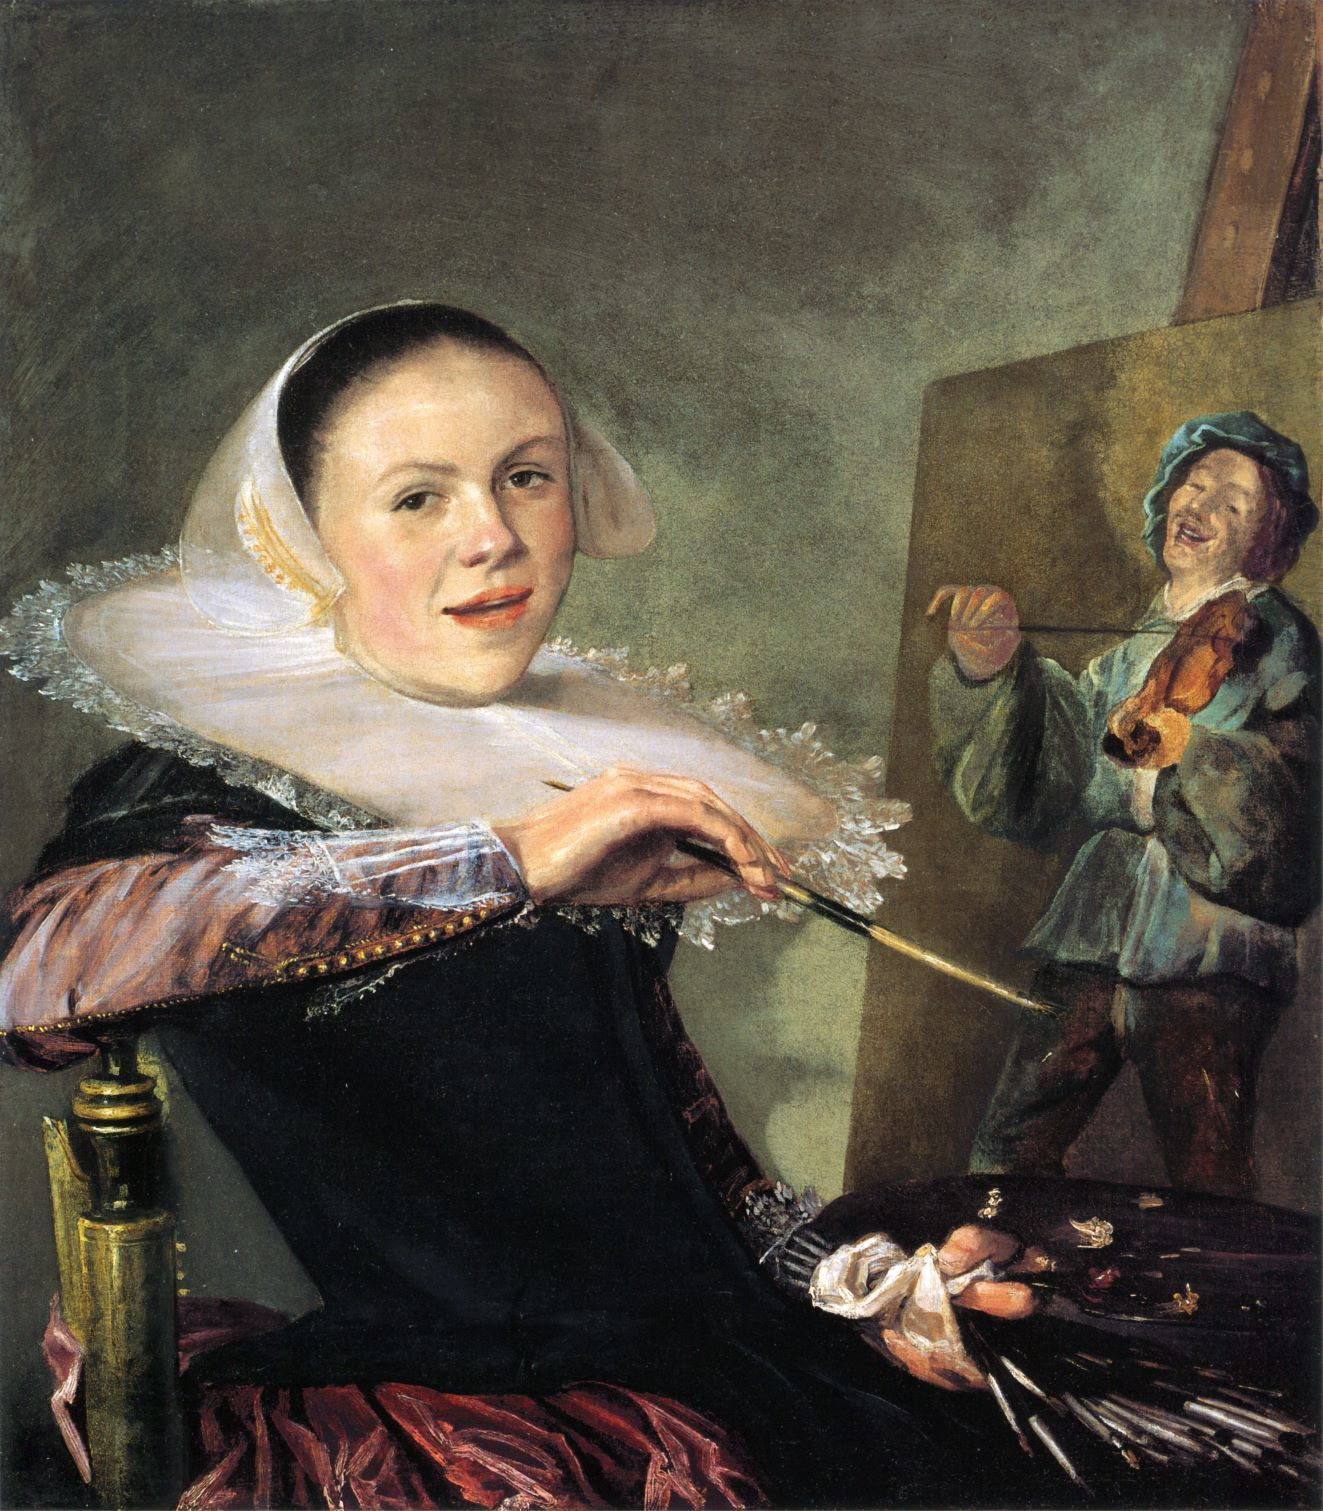 Self portrait by Judith Leyster